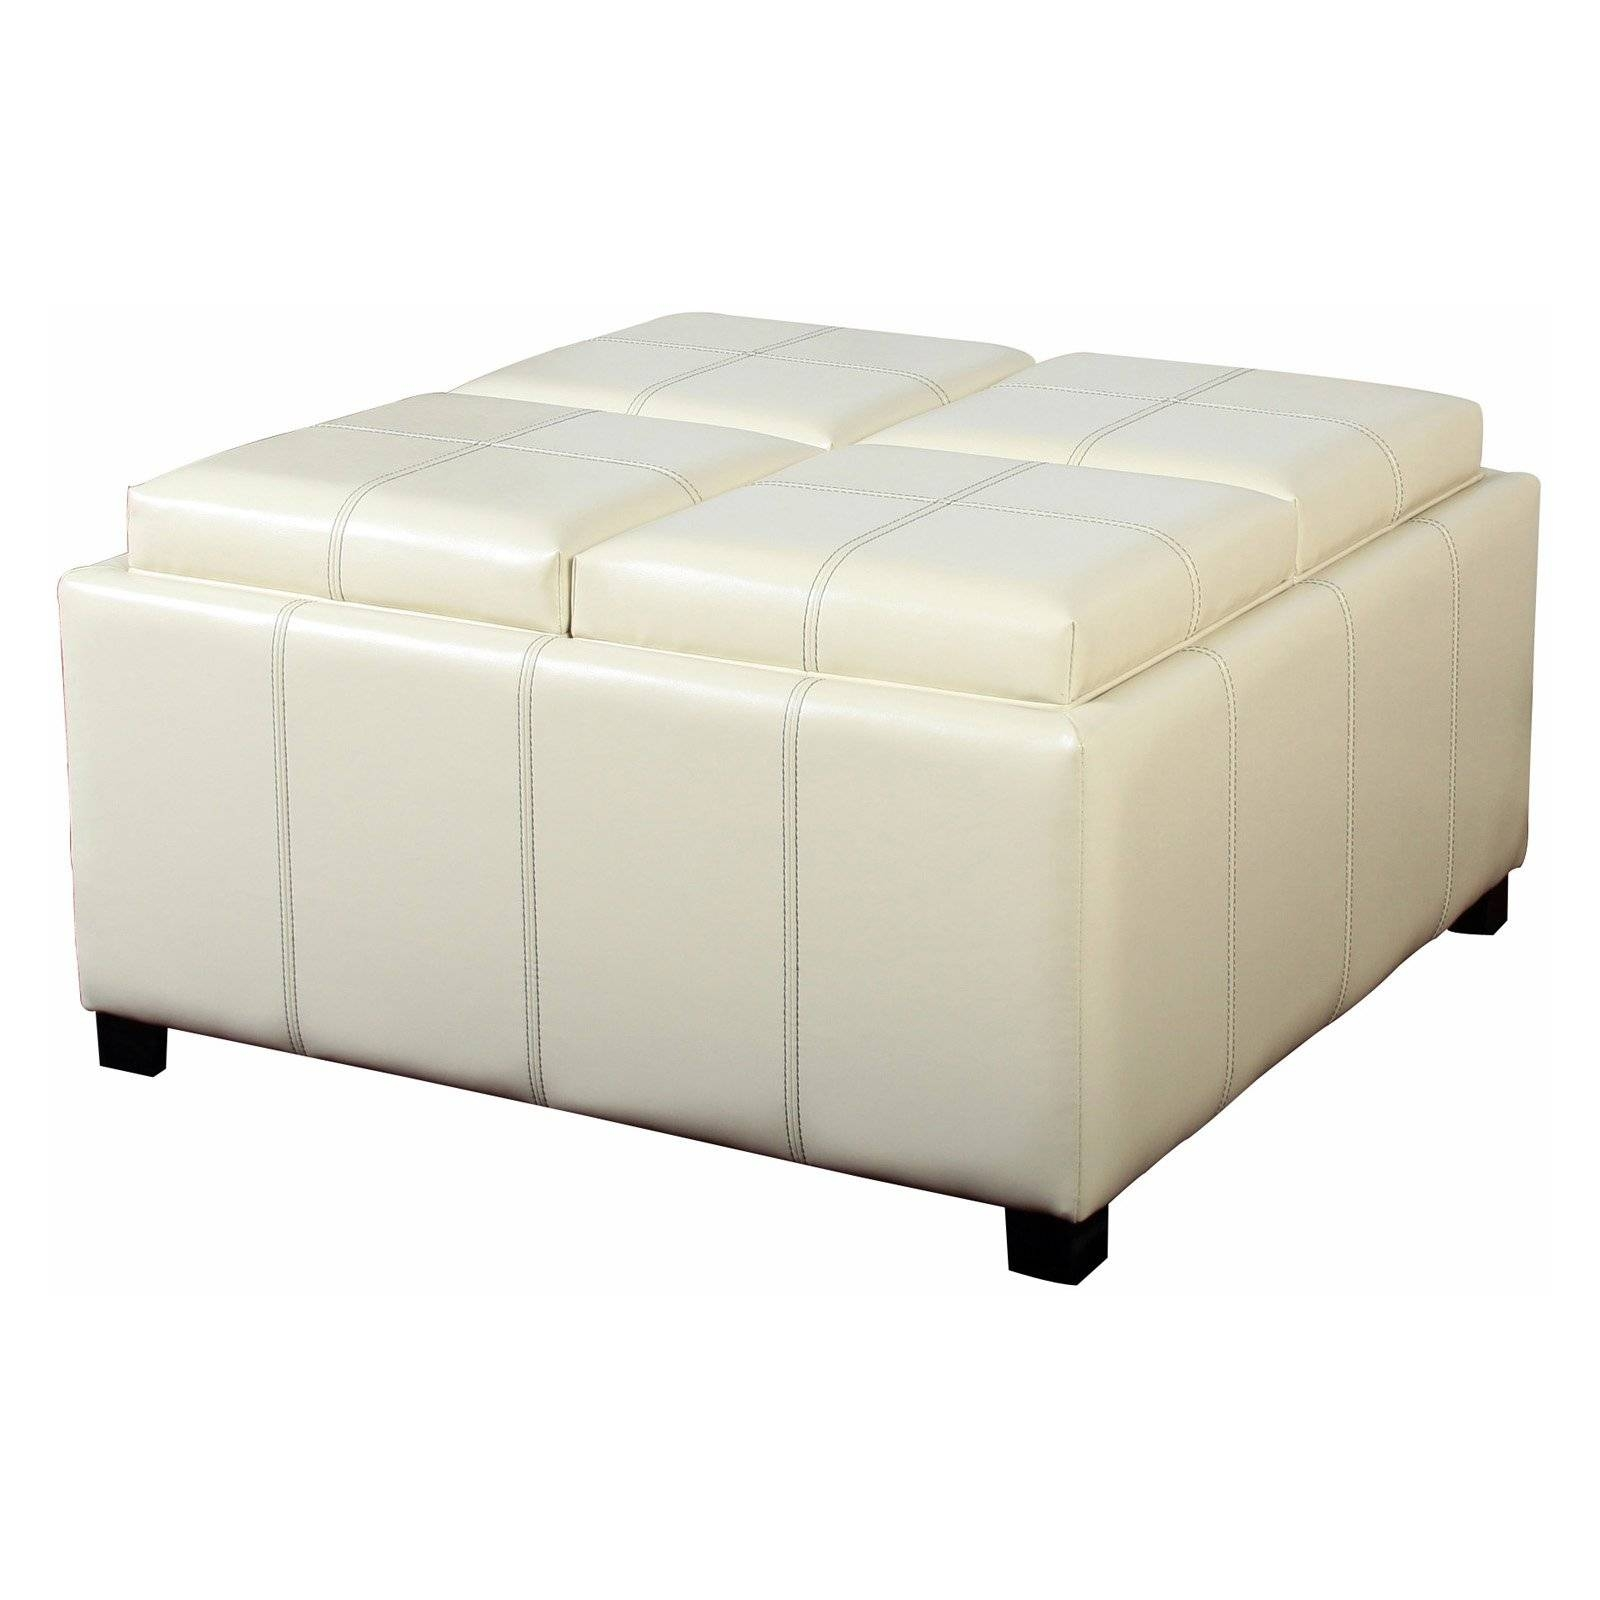 Furniture. Glamorous White Coffee Tables With Storage For Warm in White Coffee Tables With Baskets (Image 16 of 30)